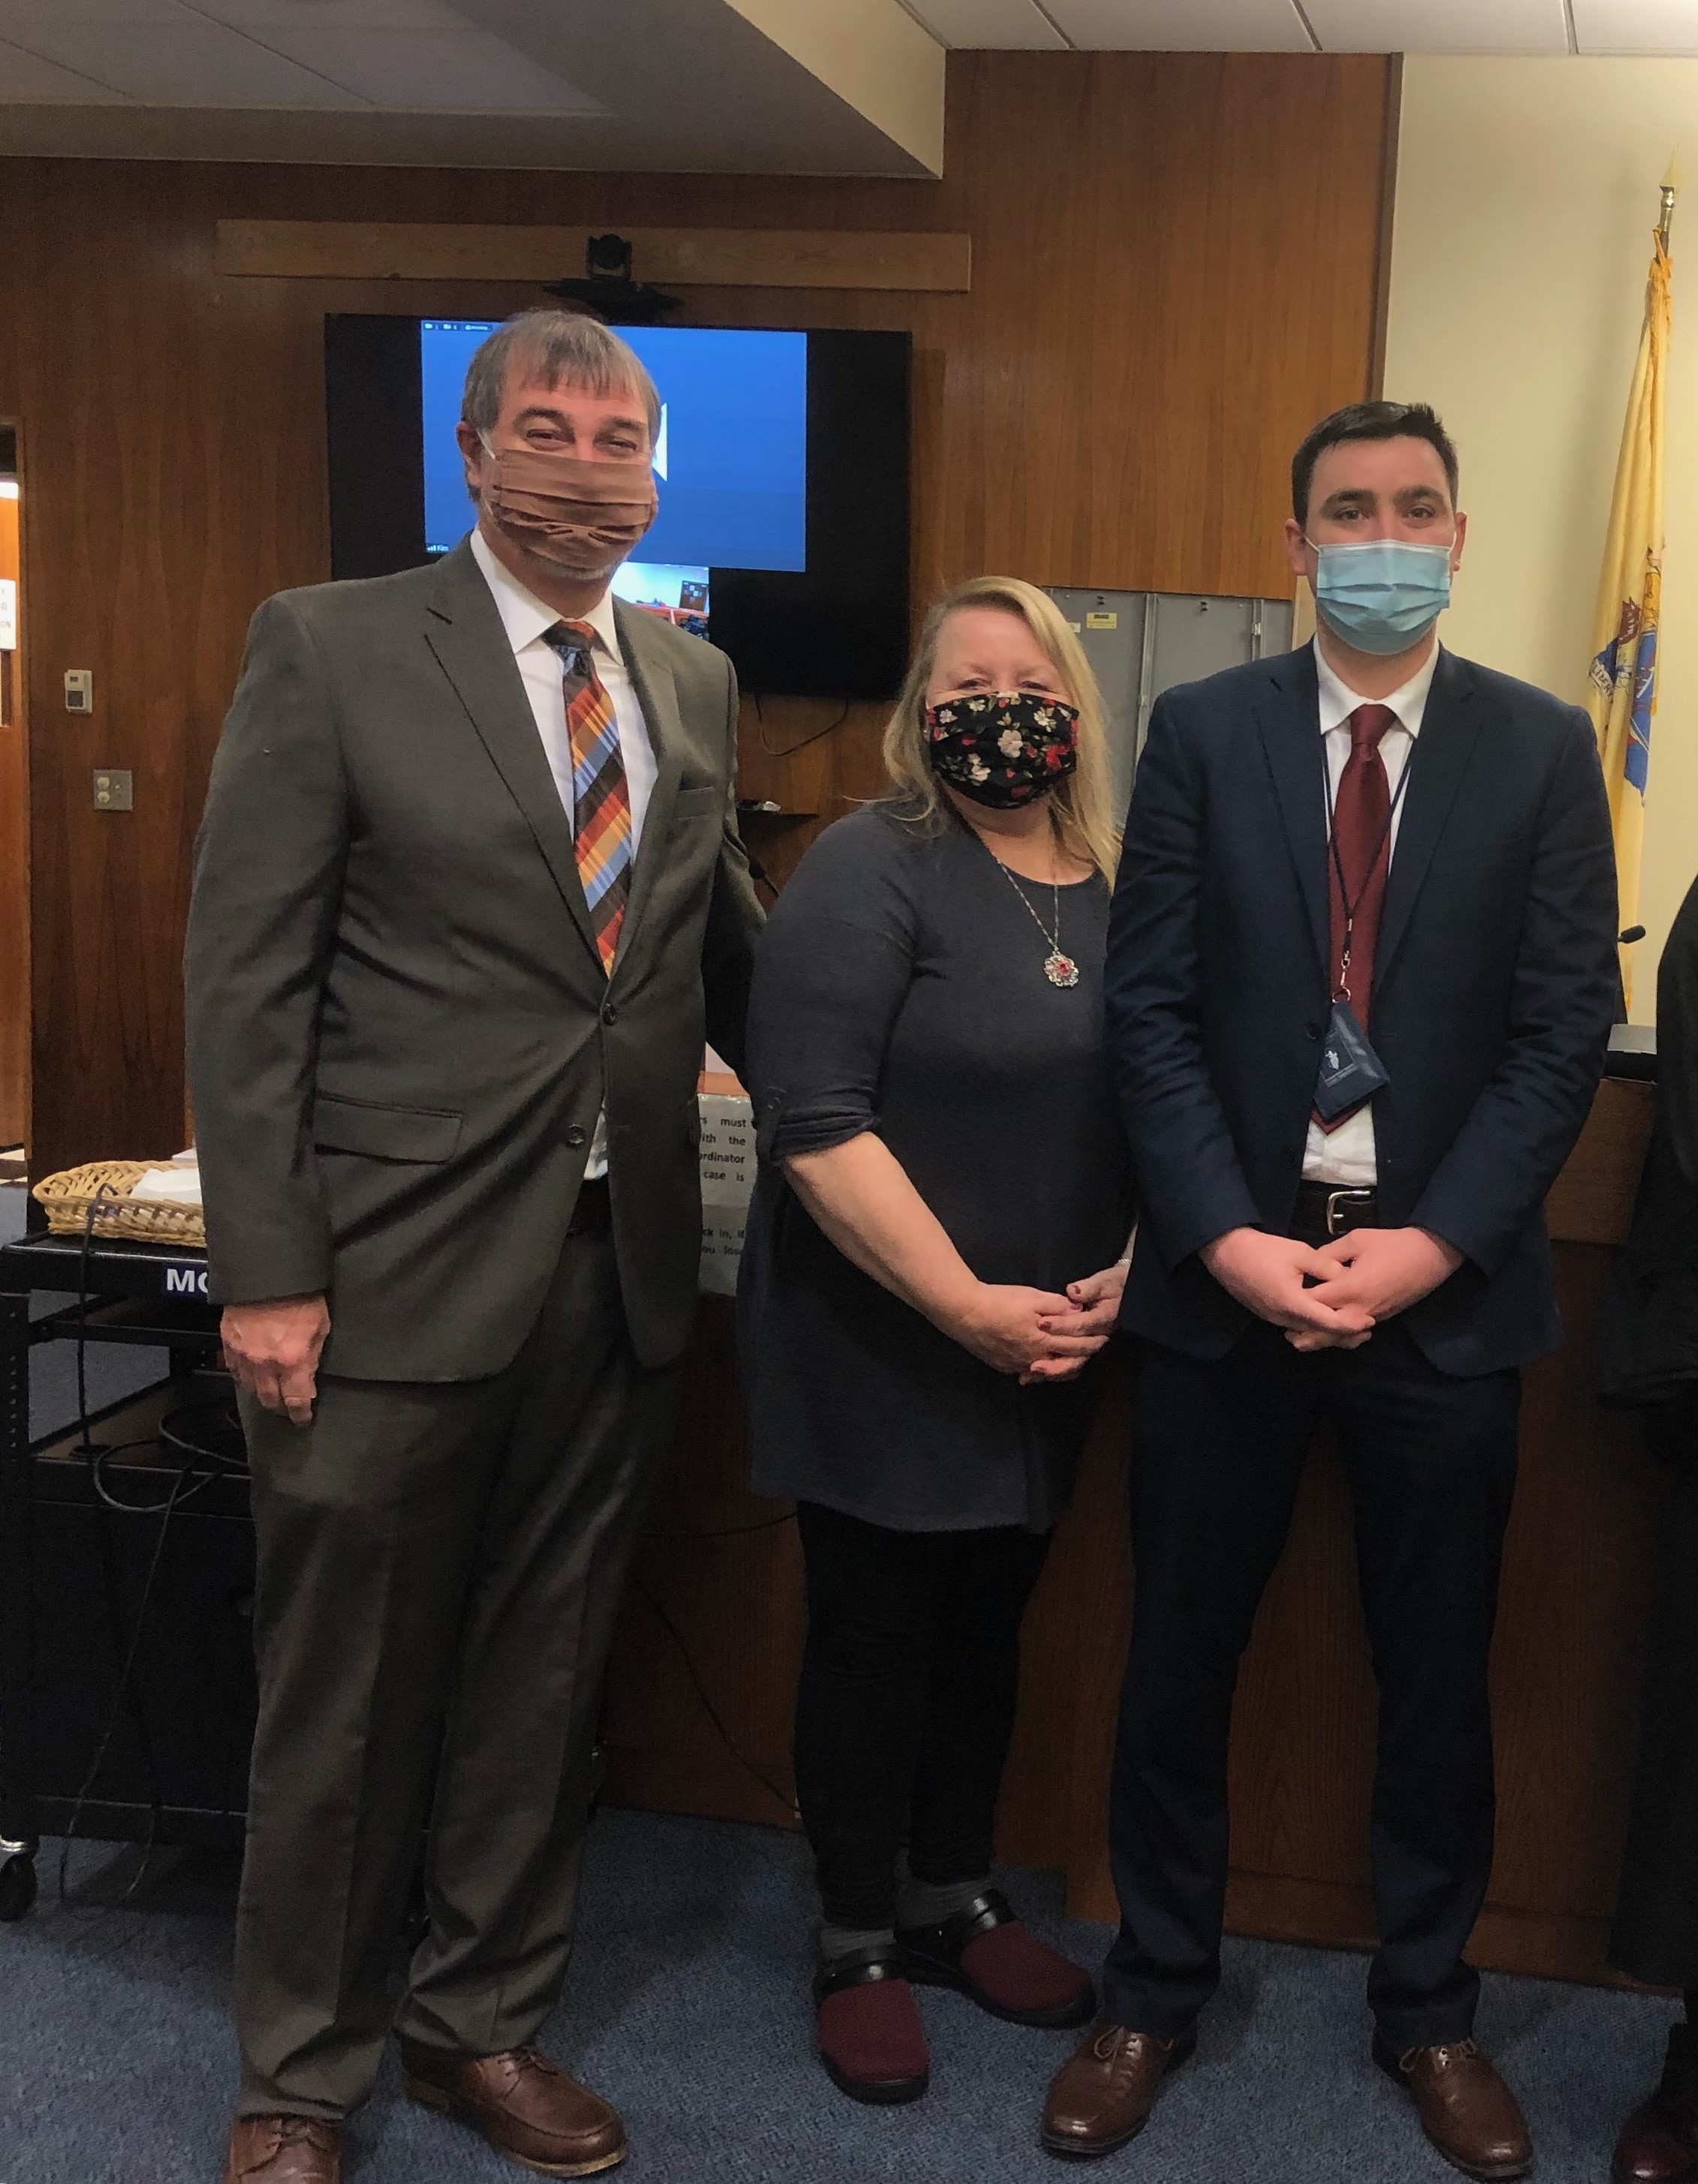 Father, mother, adult son standing together, all wearing masks